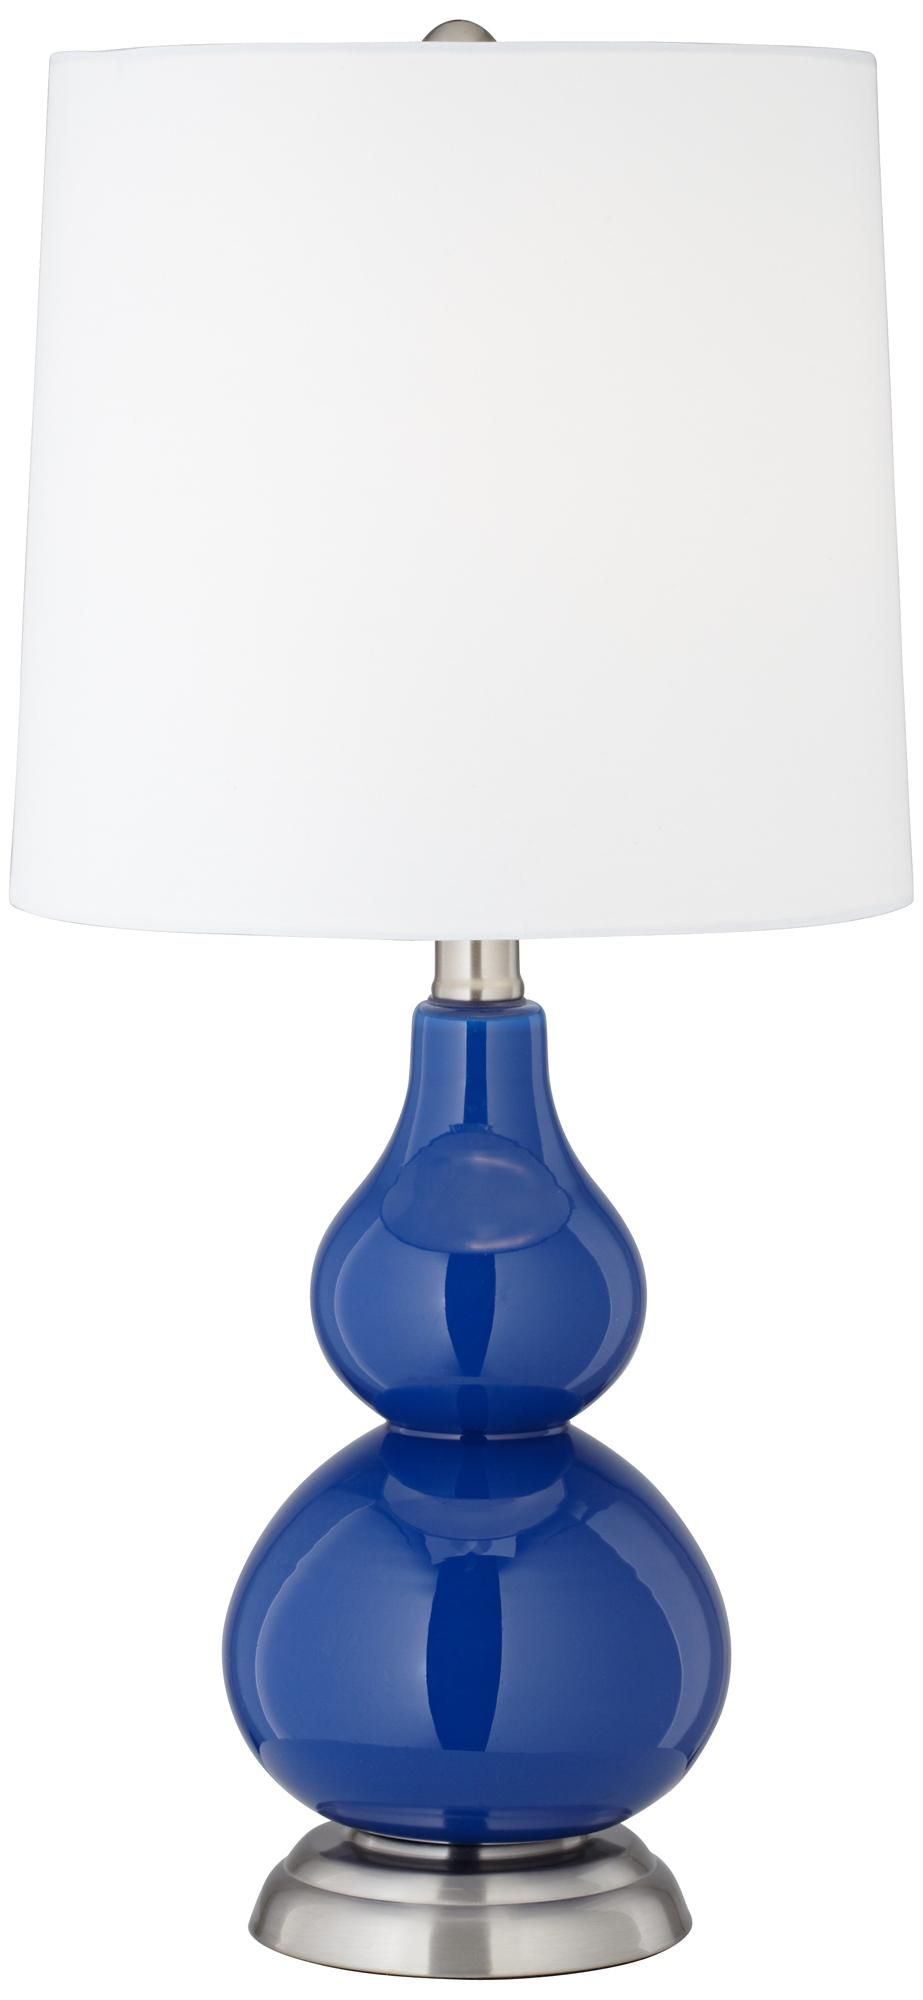 royal blue small gourd accent table lamp first employee round purchase couldn happier linon galway white ocean decor retro furniture cordless led side lamps for living room